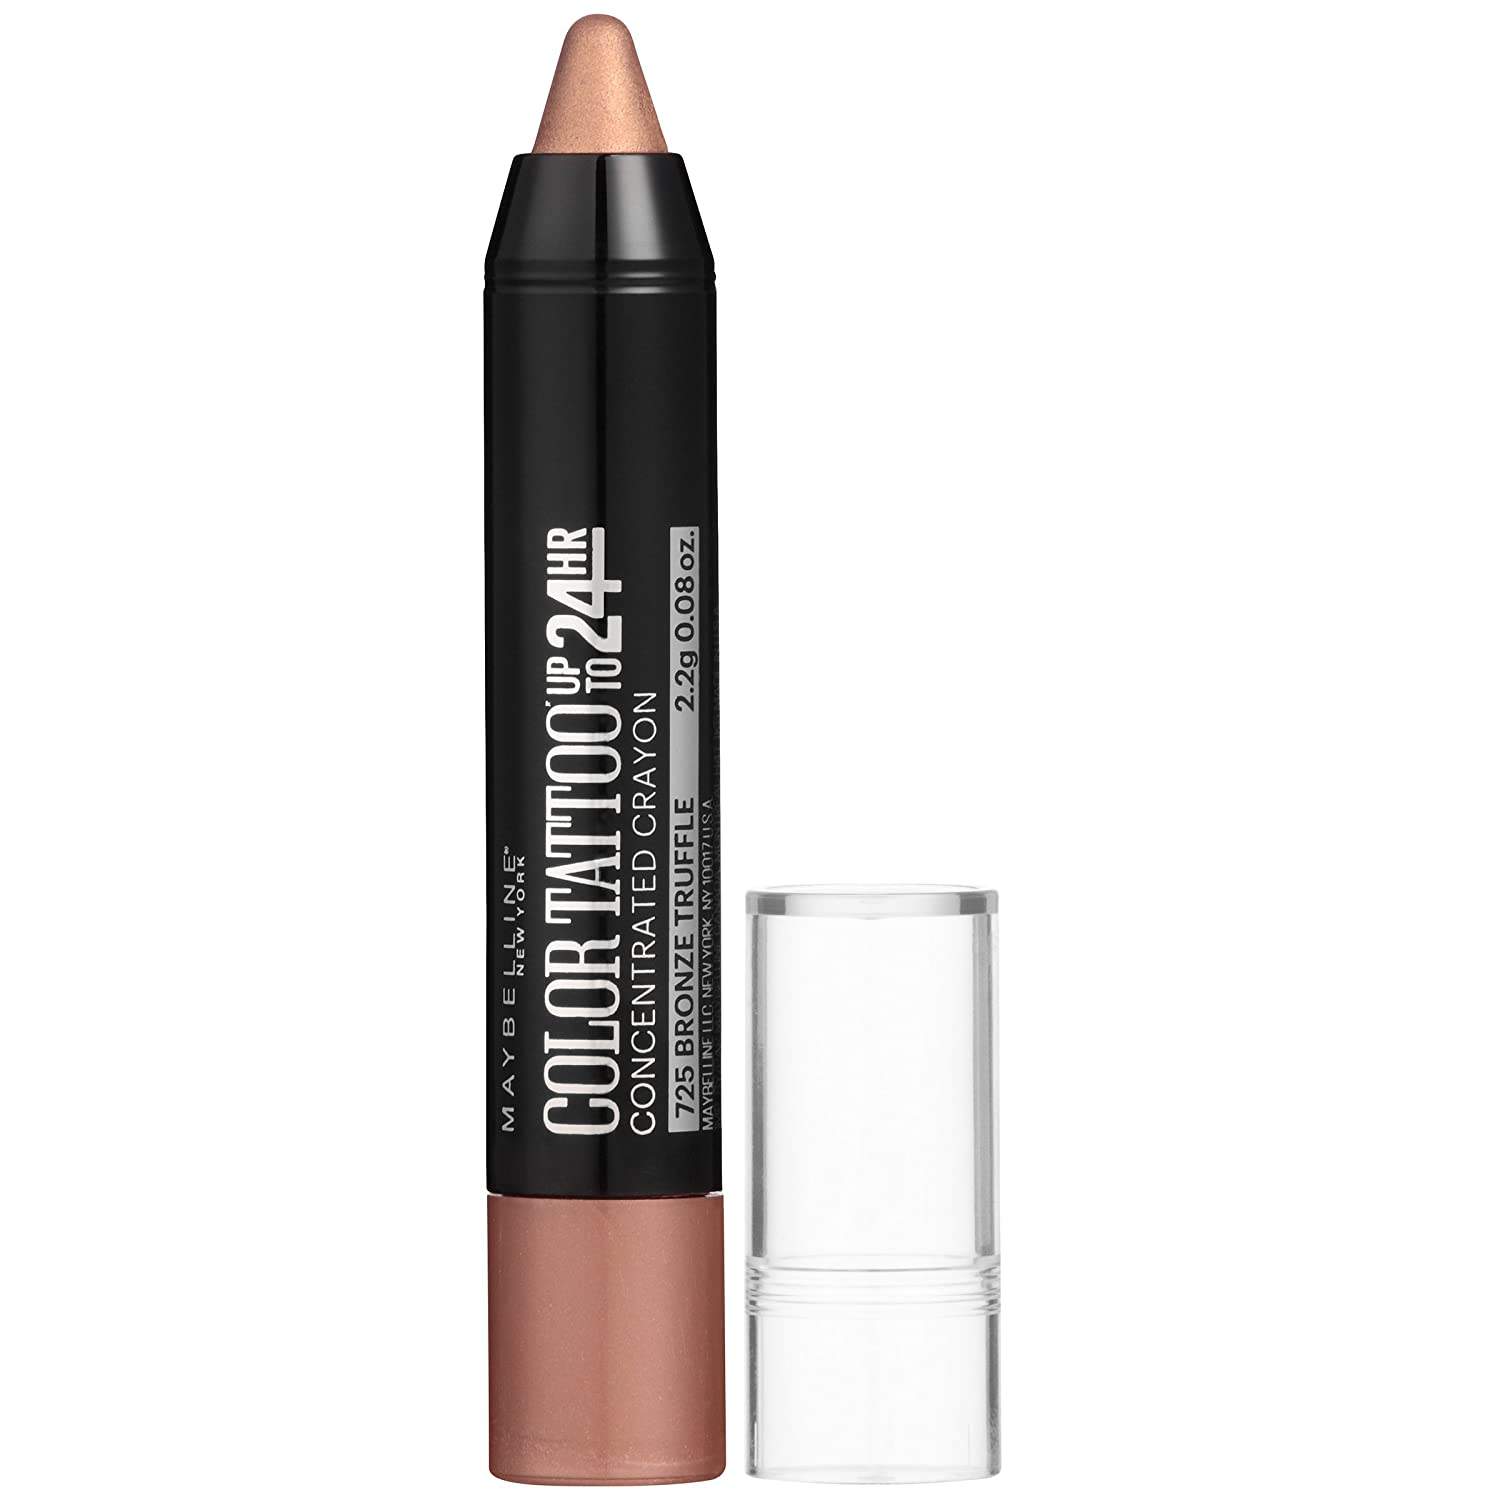 Maybelline New York Eyestudio Color Tattoo Concentrated Crayon Eye Color, Bronze Truffle, 0.08 Ounce